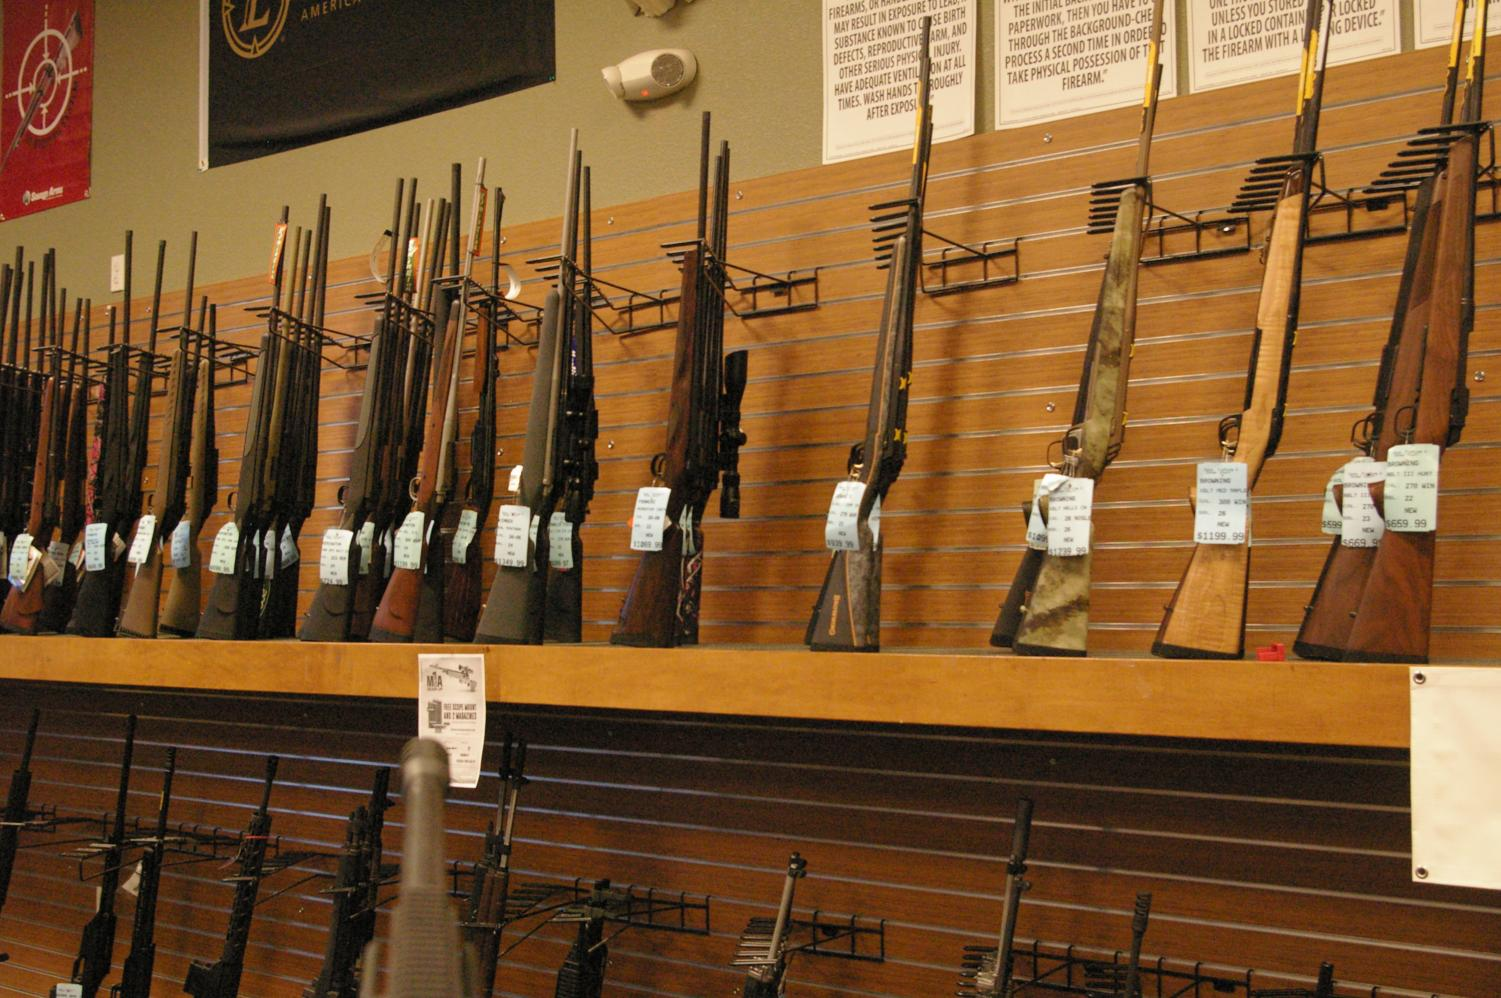 A new state law increases the minimum age to buy a rifle or shotgun from 18 to 21 years old.